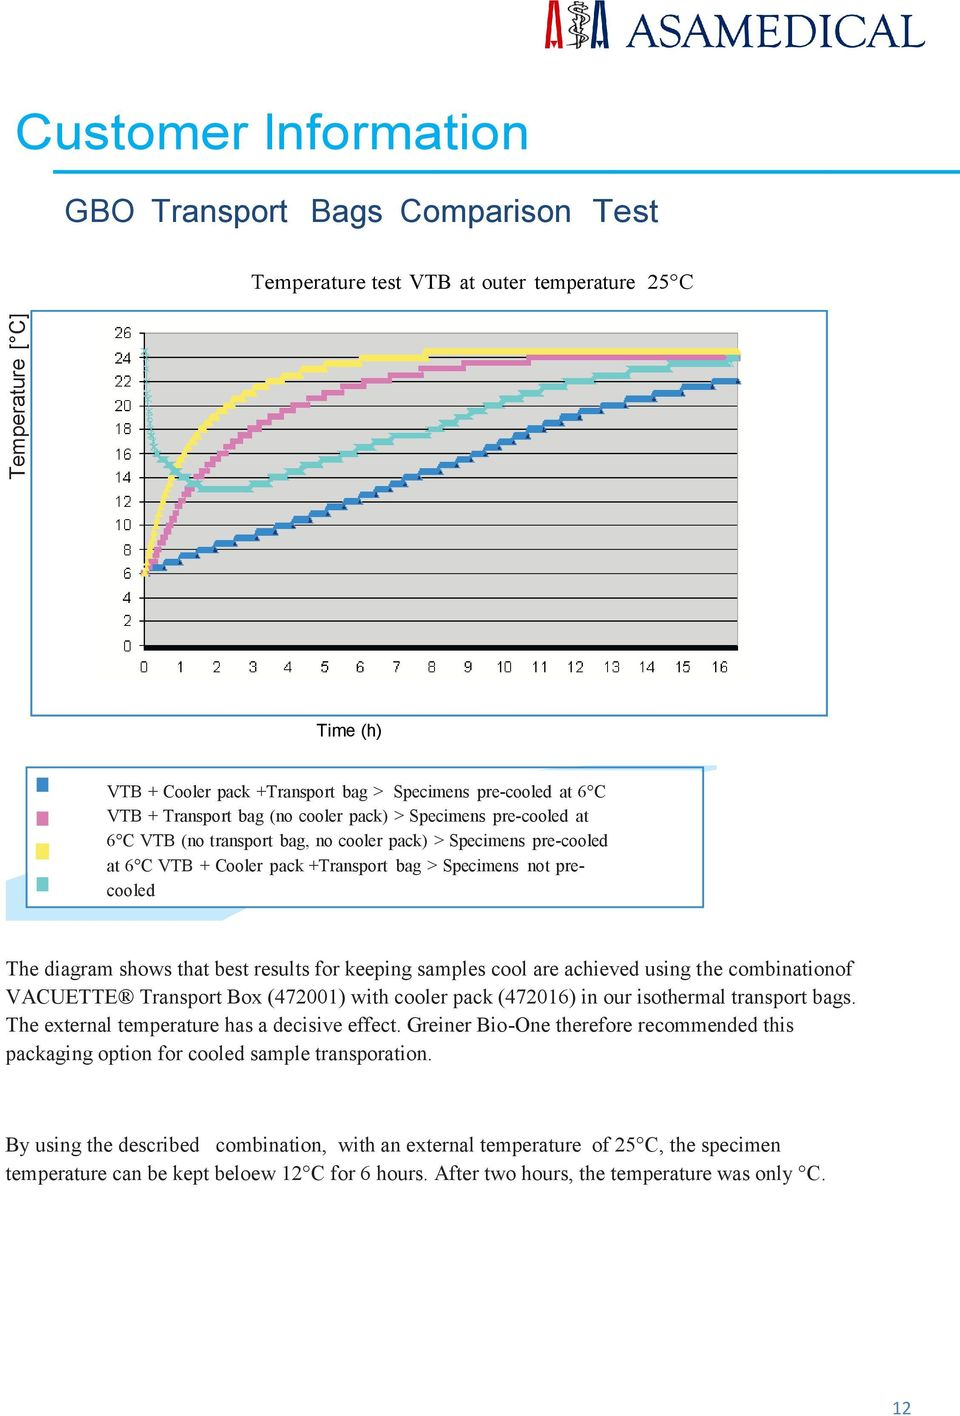 diagram shows that best results for keeping samples cool are achieved using the combinationof VACUETTE Transport Box (472001) with cooler pack (472016) in our isothermal transport bags.